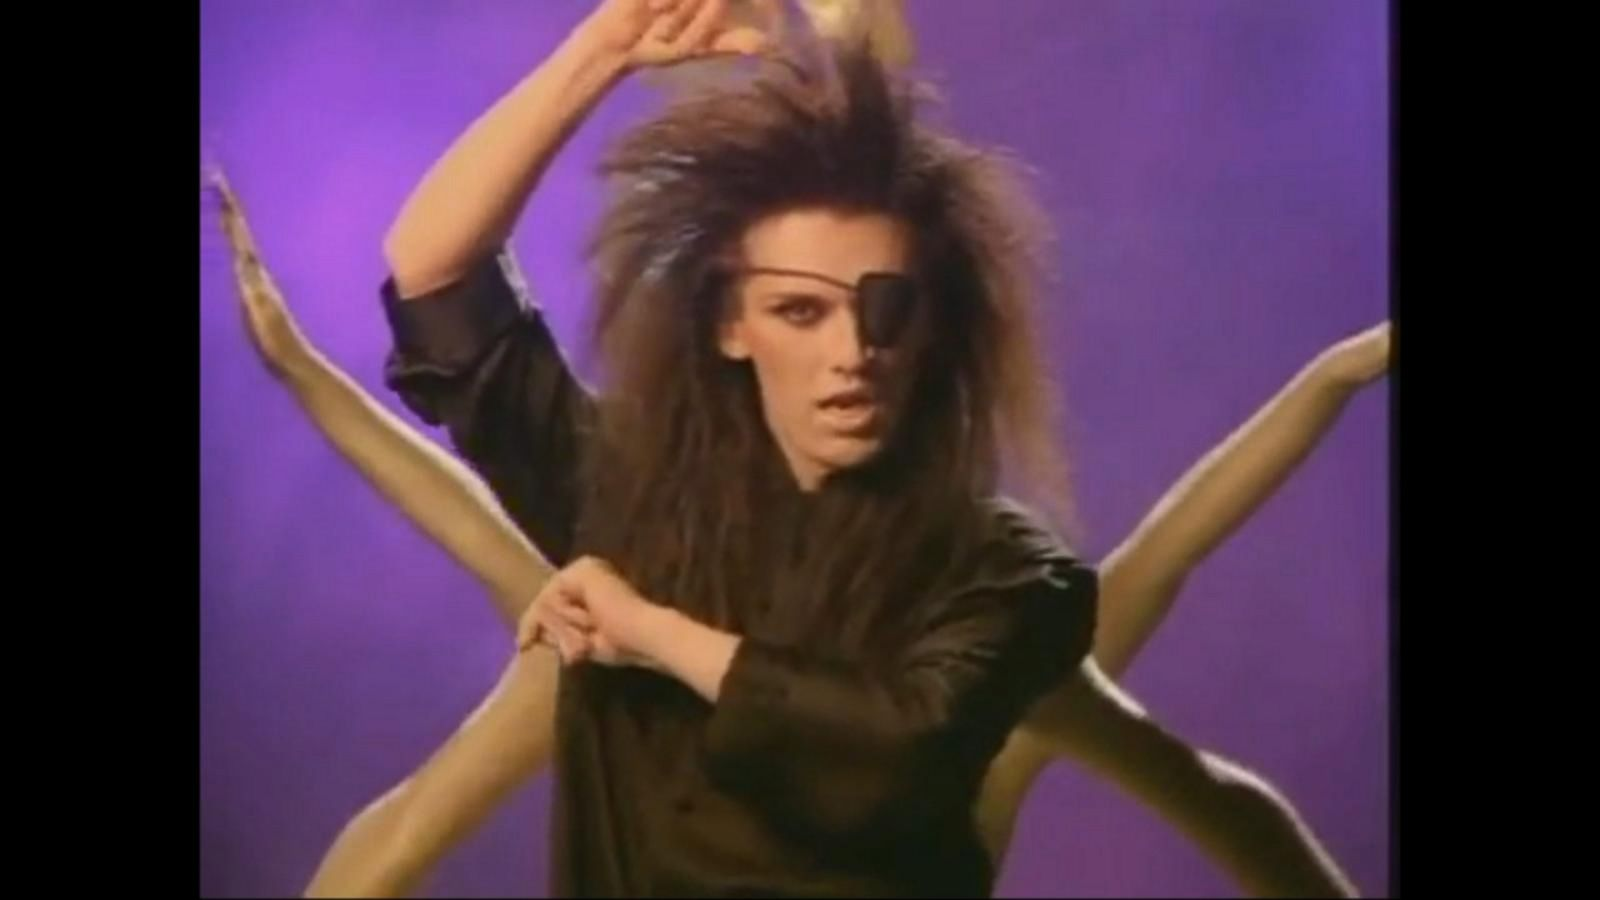 VIDEO: Remembering Pete Burns, Lead Singer of Dead or Alive